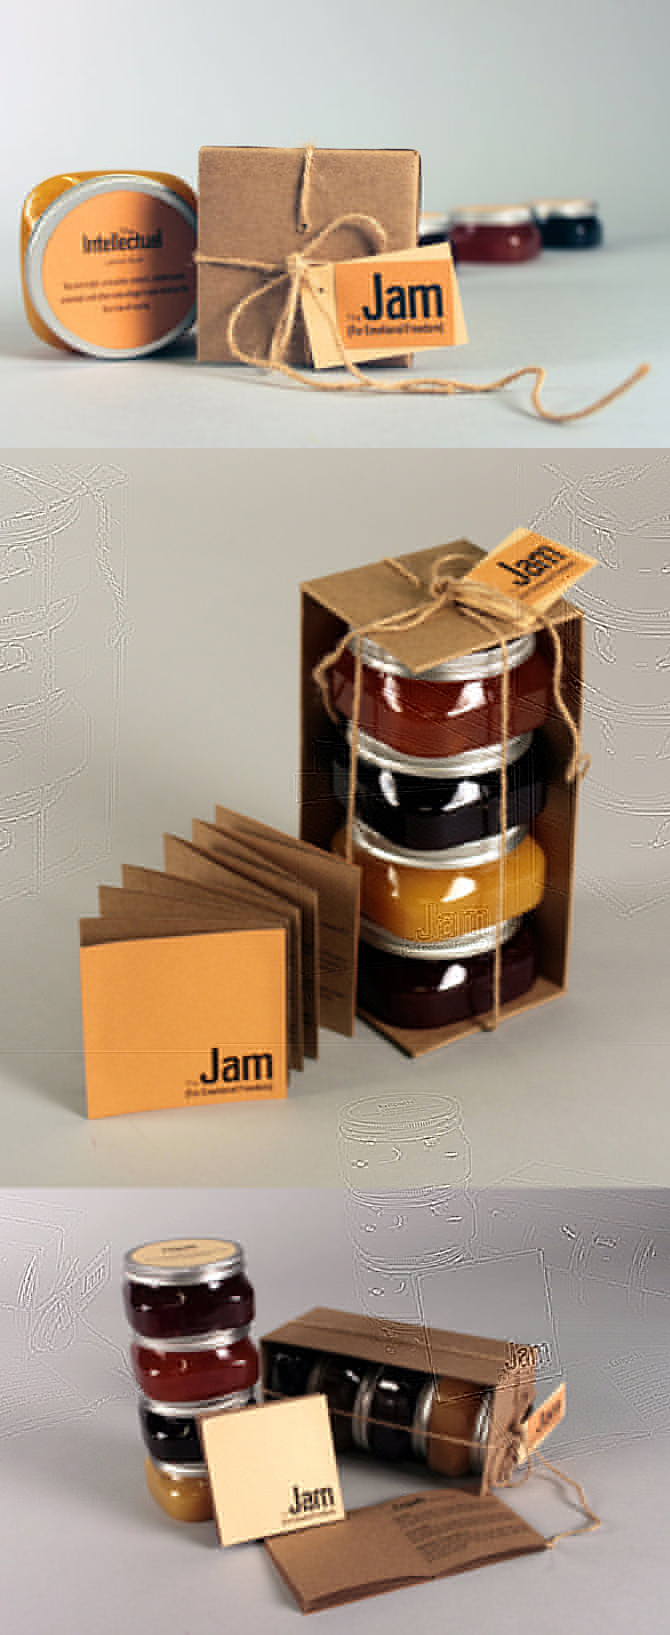 jam packaging project